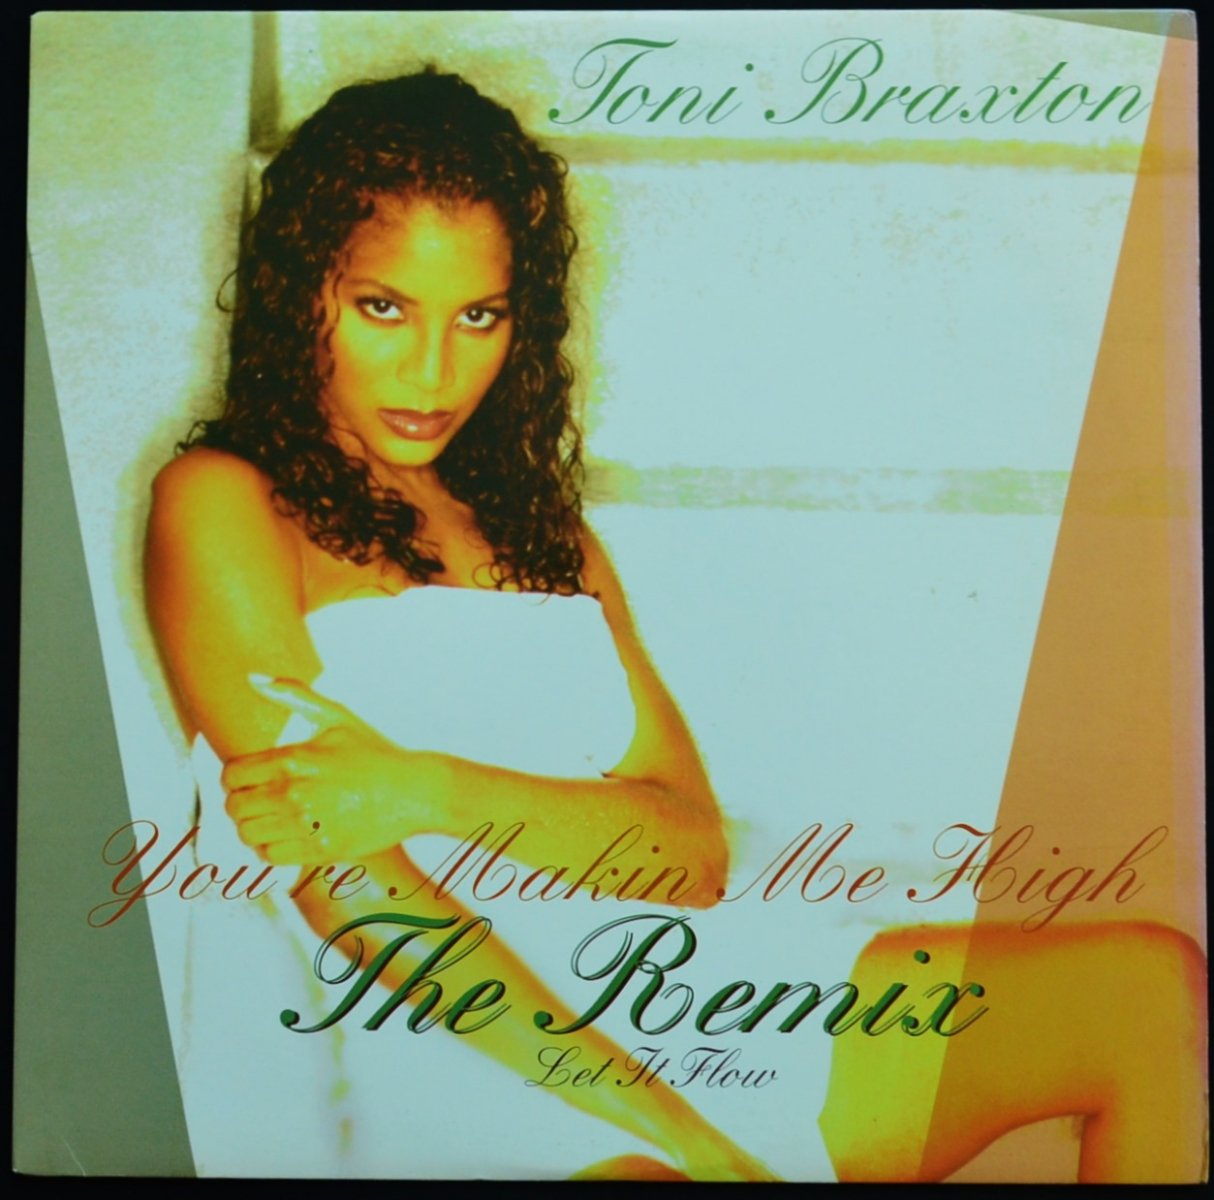 TONI BRAXTON / YOU'RE MAKIN' ME HIGH (REMIX) / LET IT FLOW (12